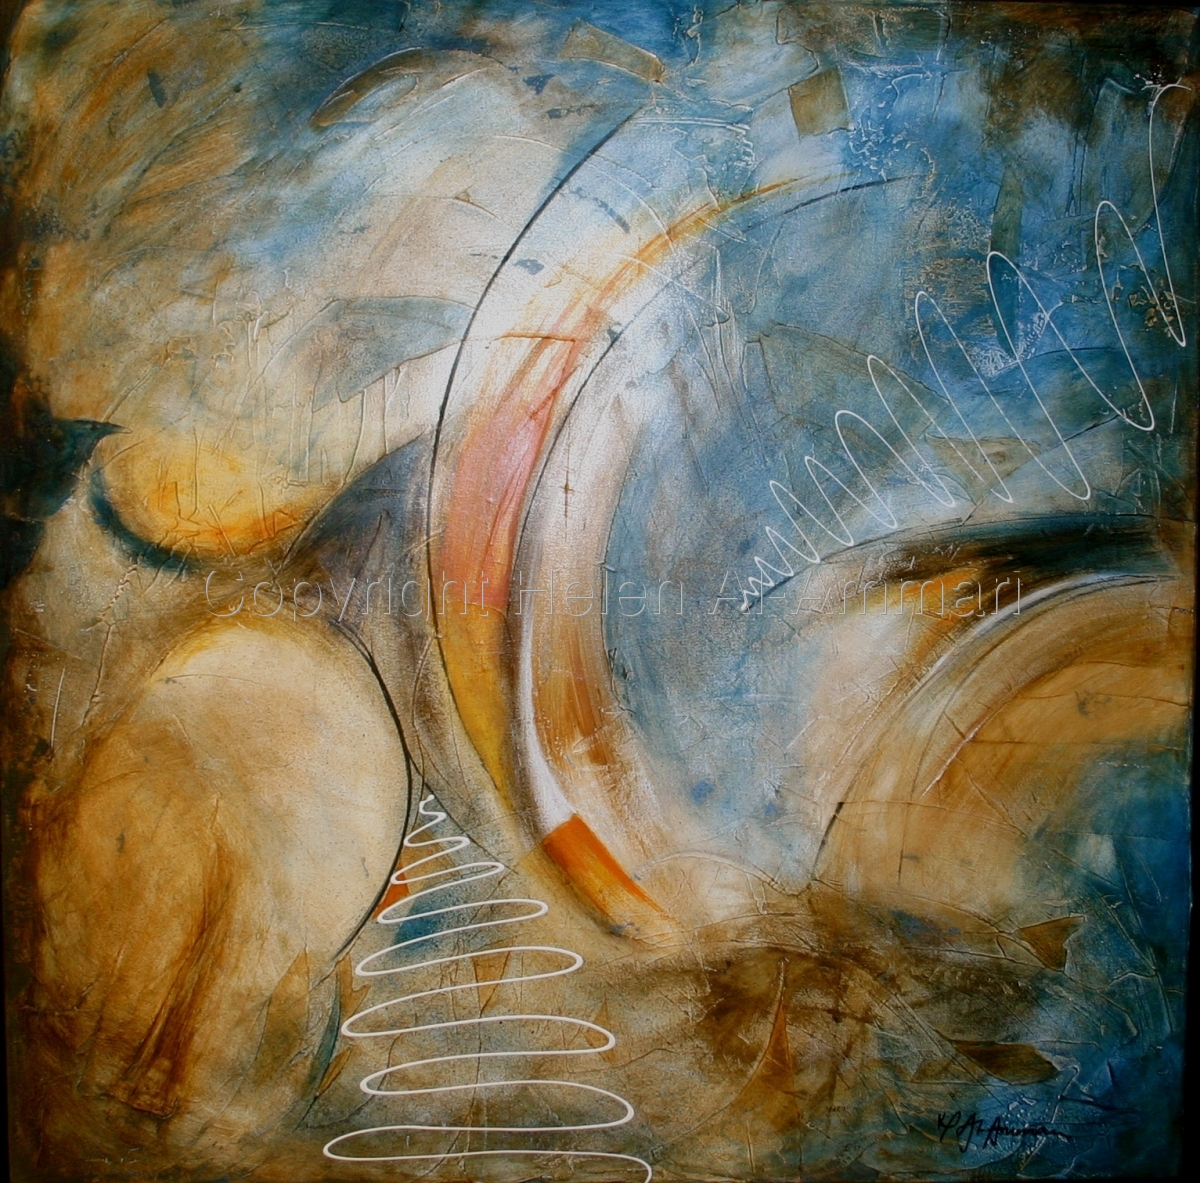 Abstract painting on blues yellows and oranges. (large view)